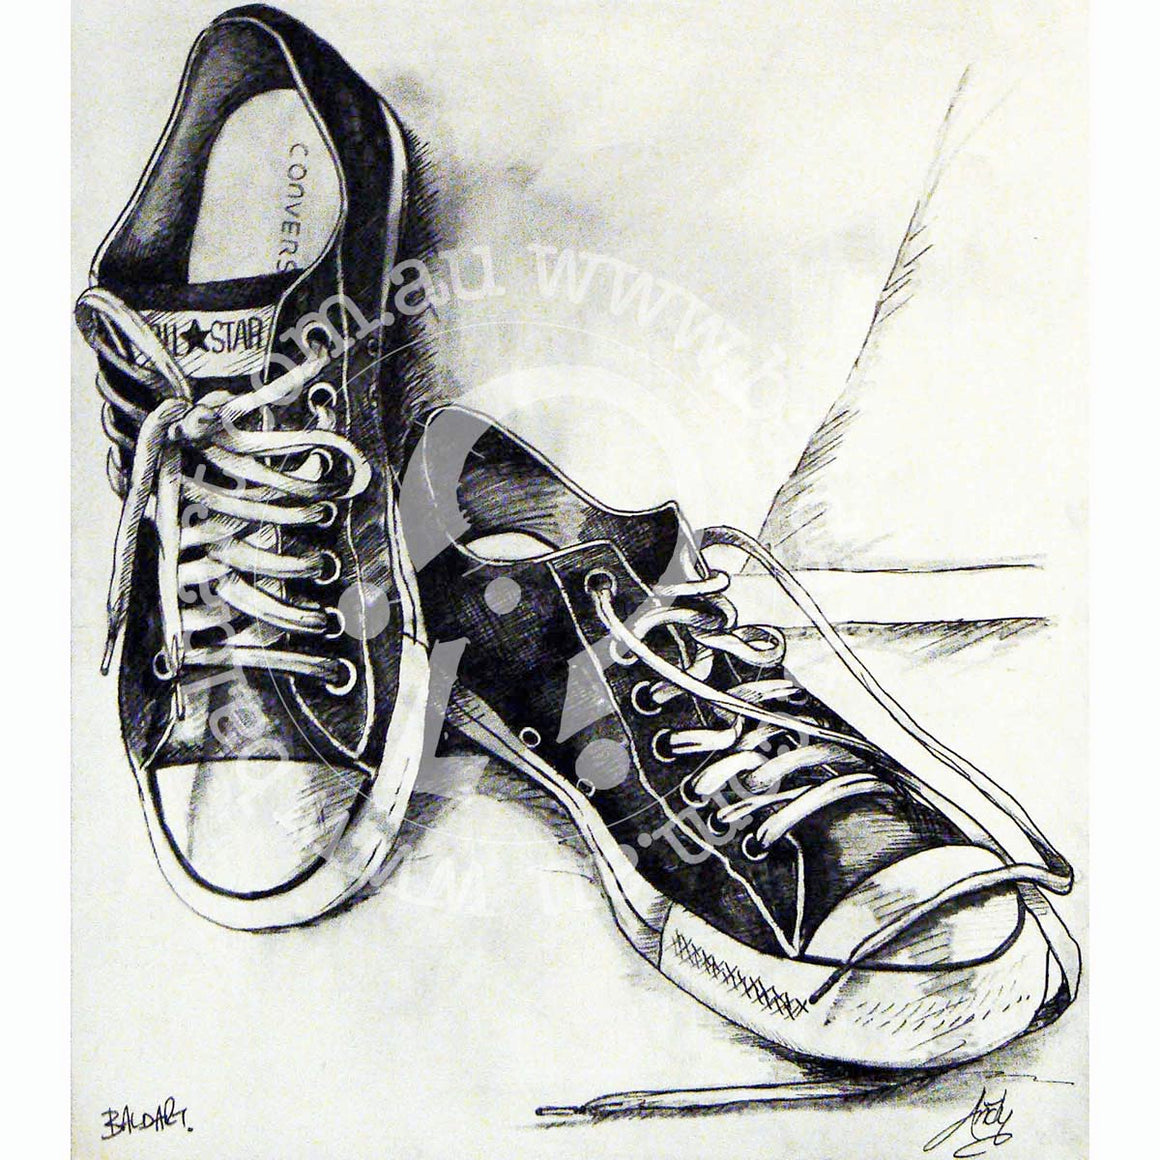 converse all stars artwork by andy baker of bald art